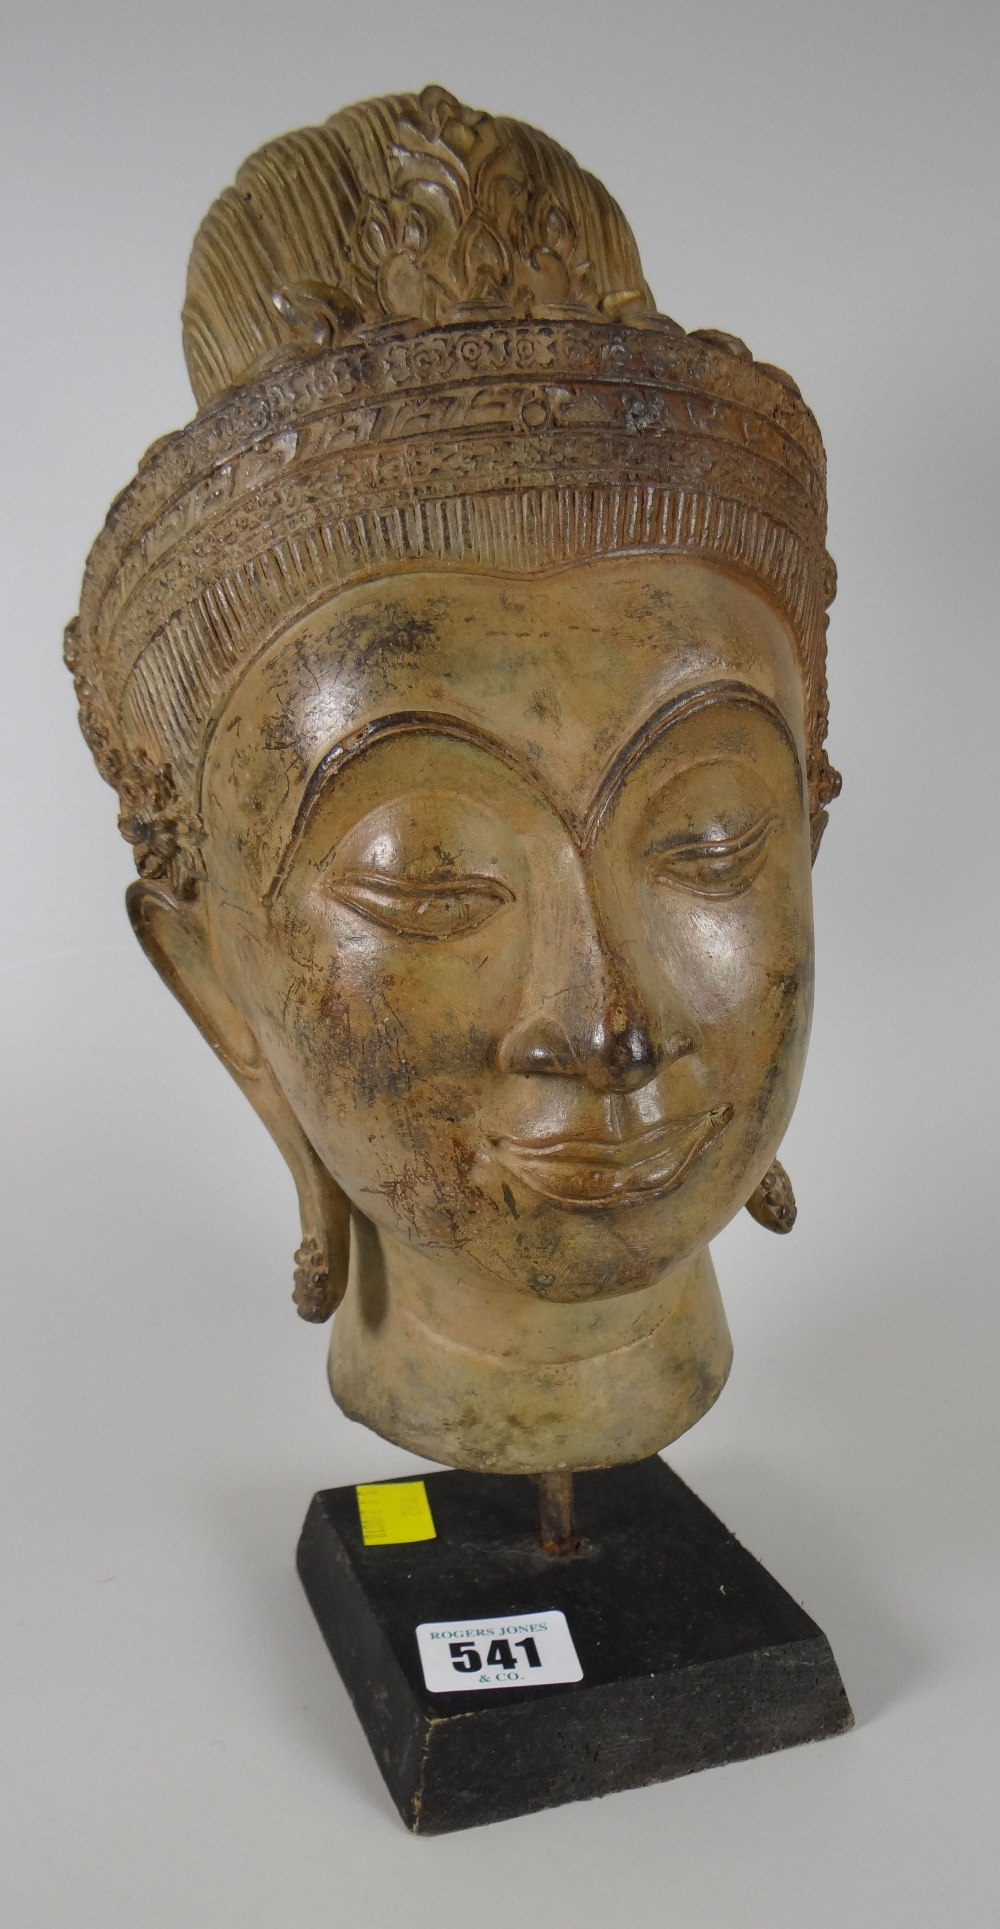 Lot 541 - A Cambodian khmer-style head